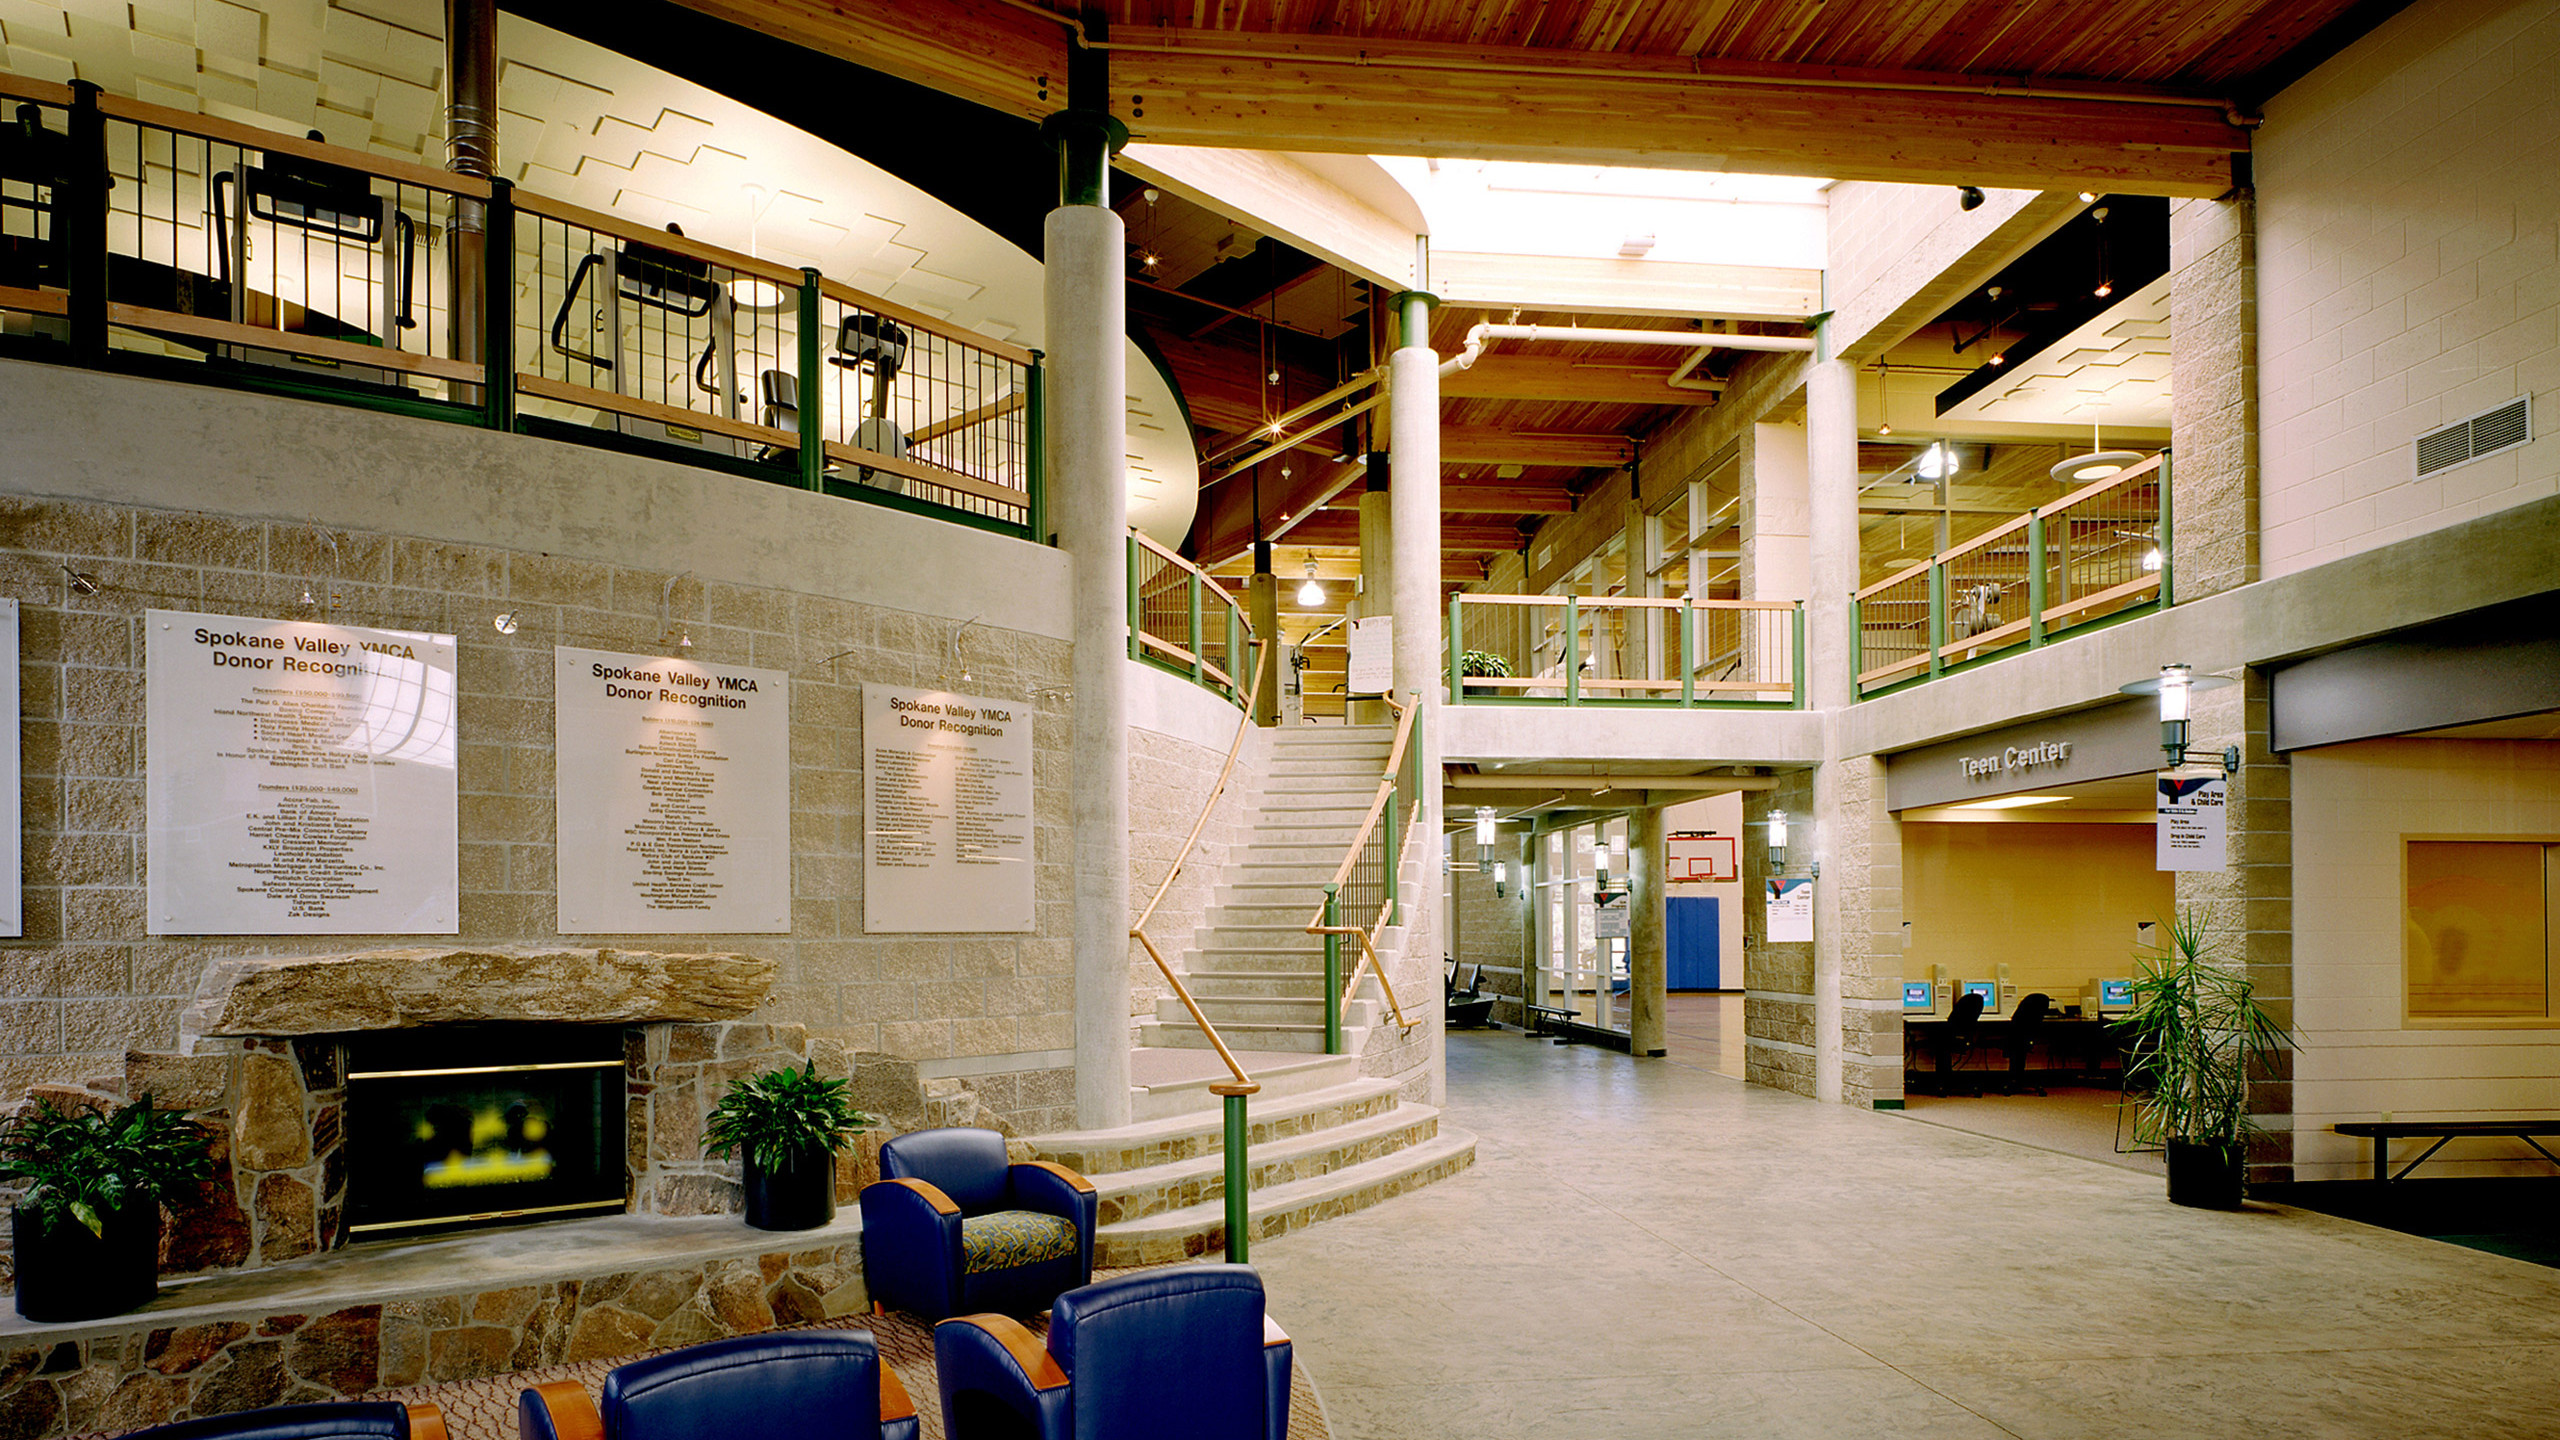 ALSC Architects YMCAValley Lobby